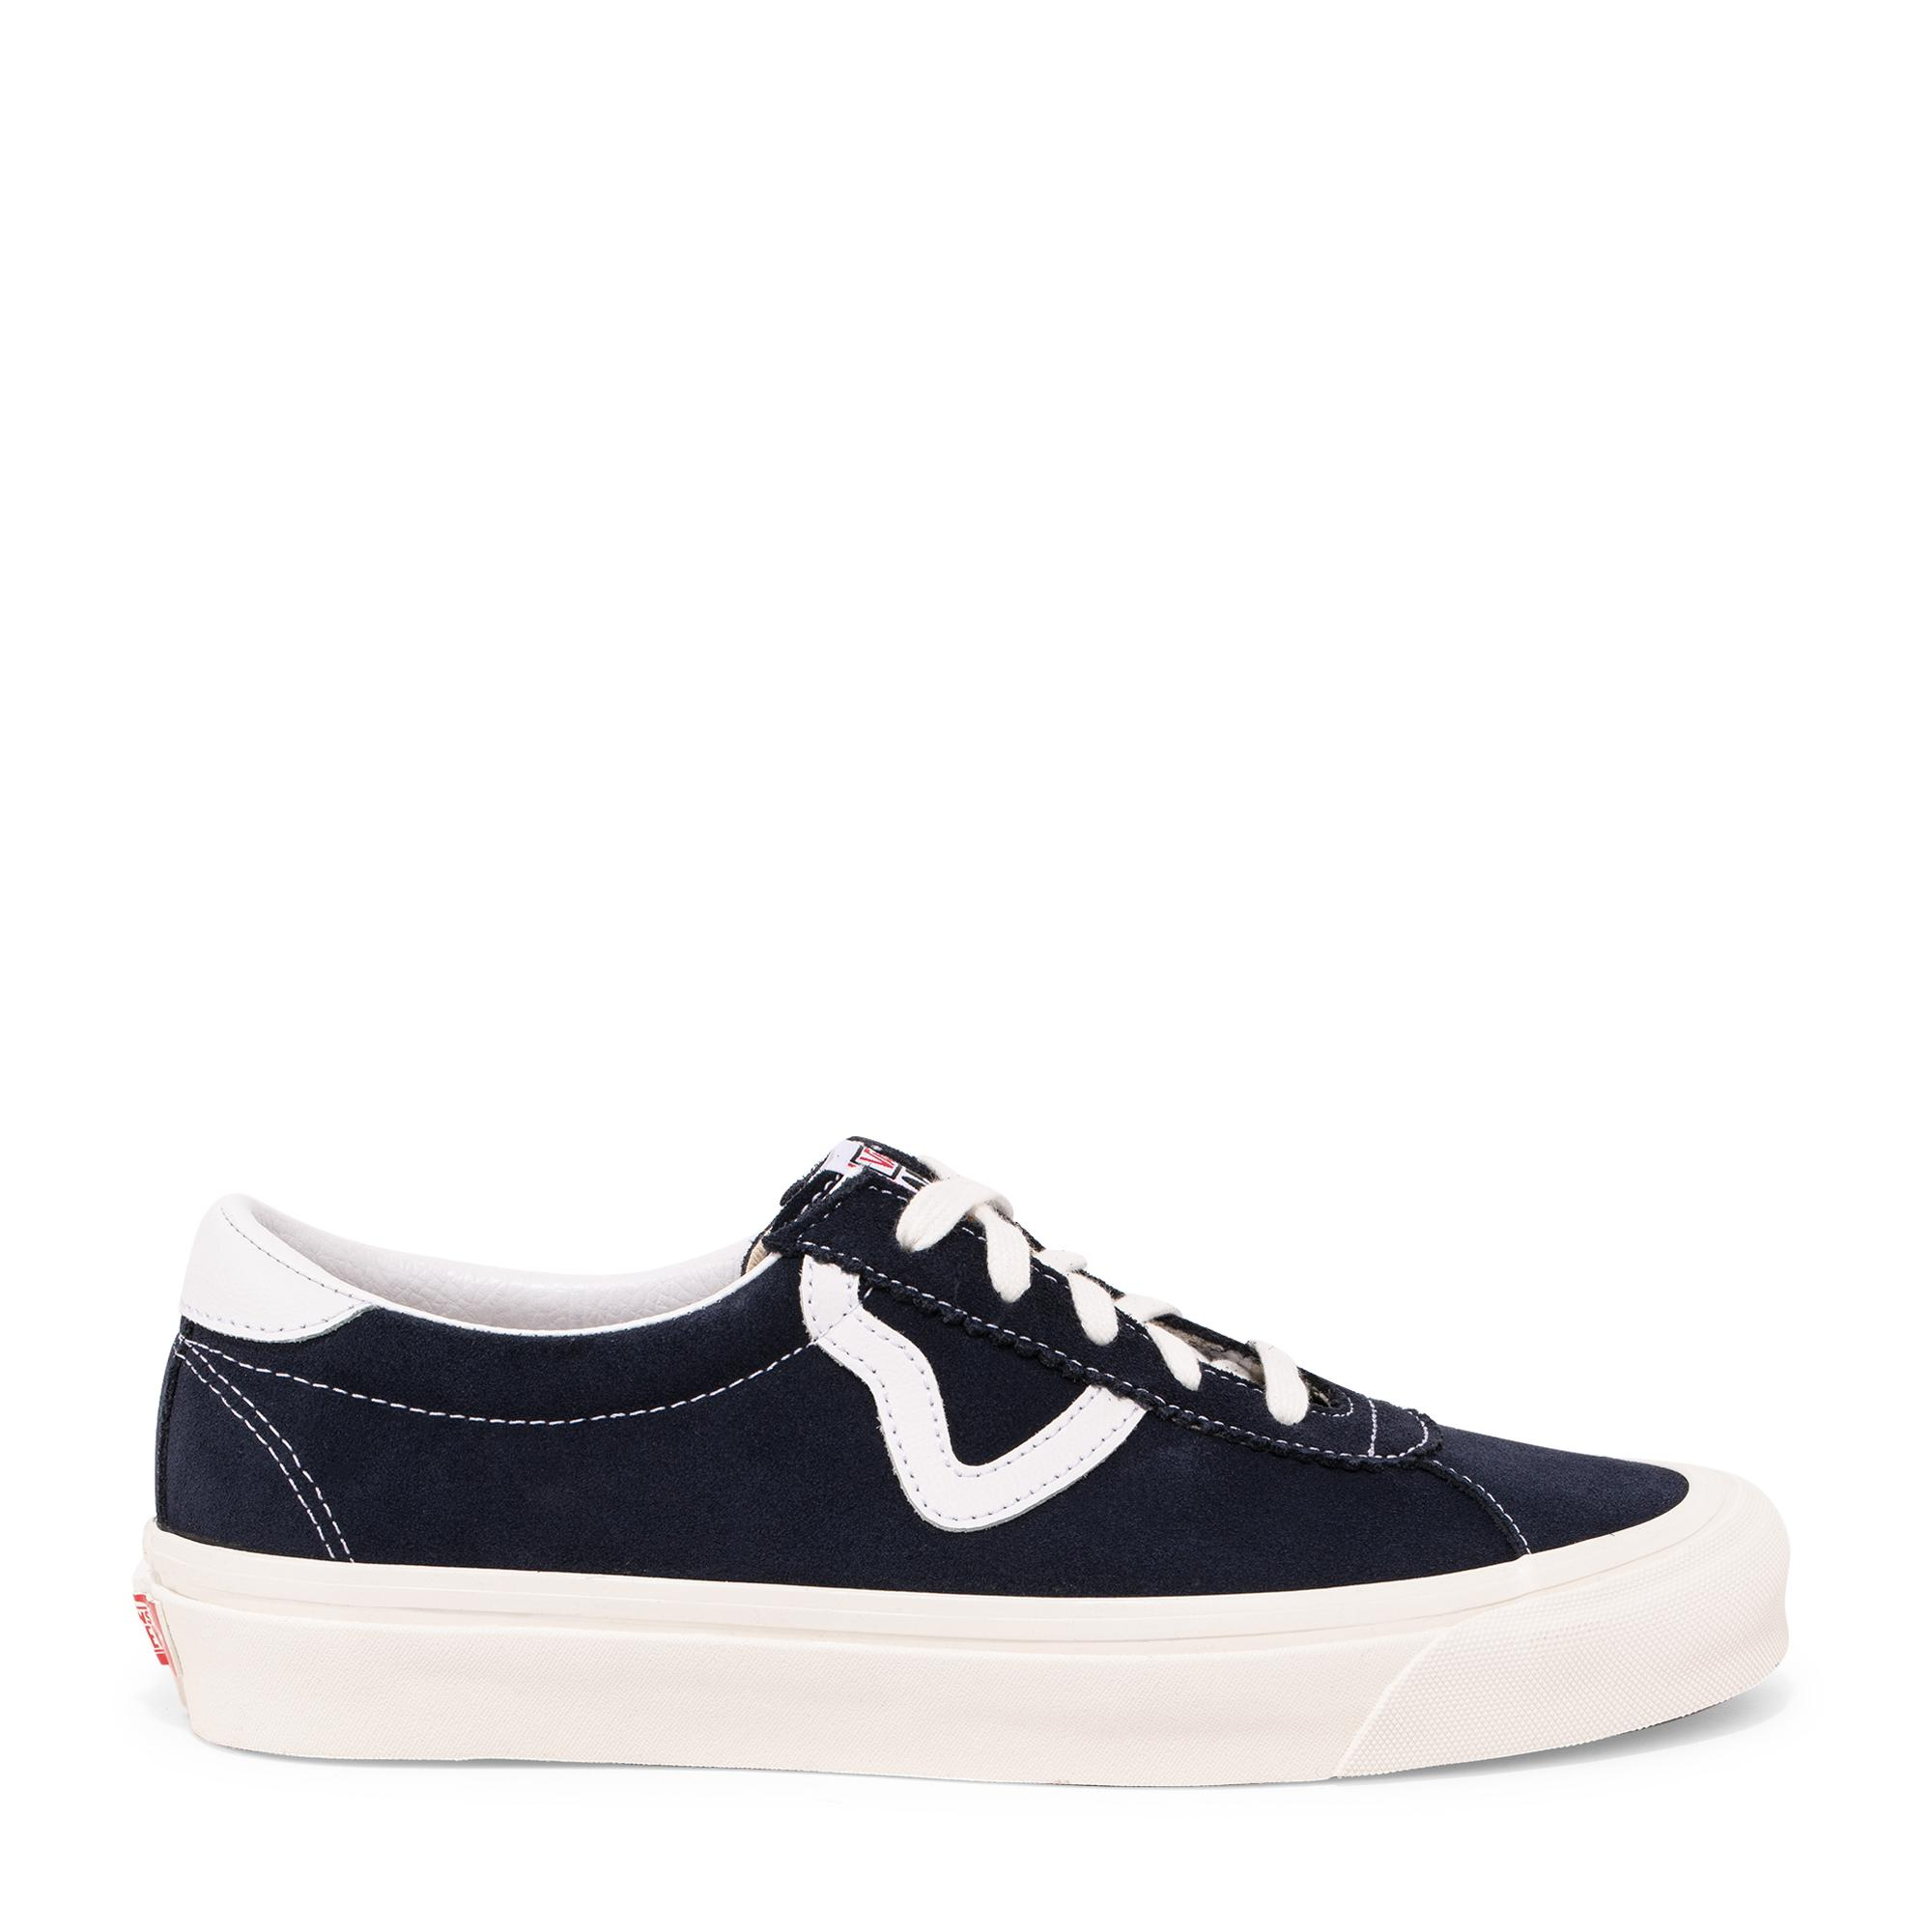 Style 73 sneakers